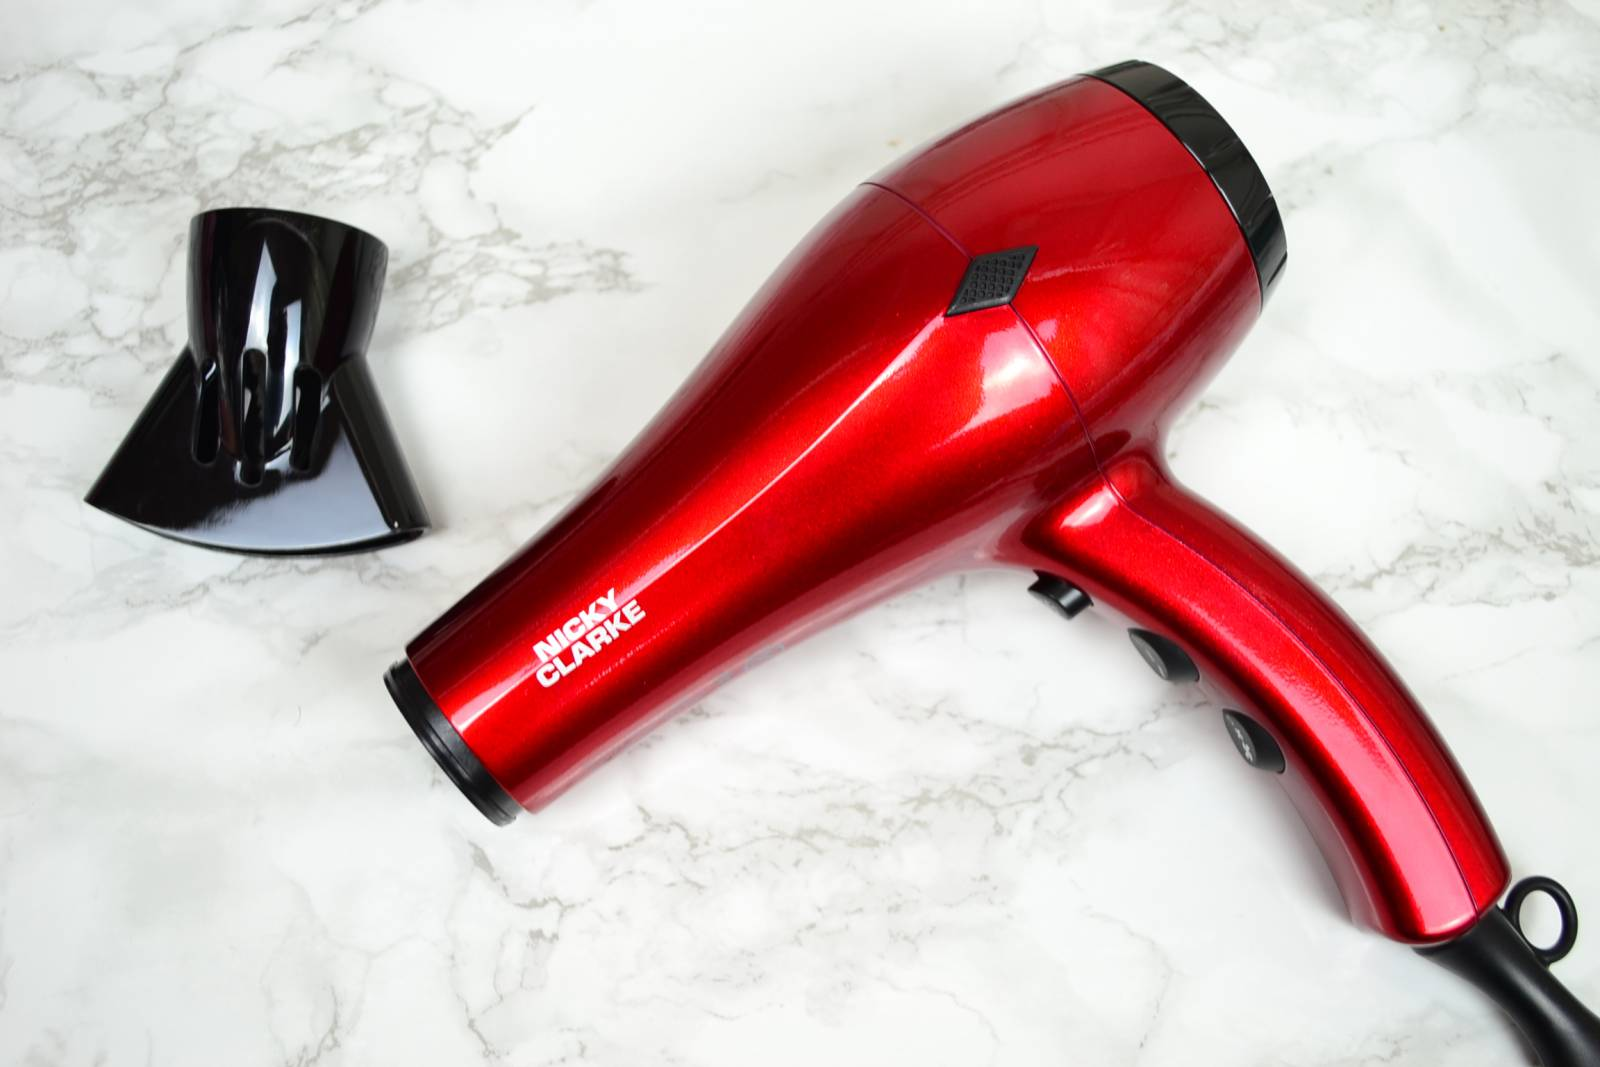 Nicky-clarke-desiRED-hairdryer-review